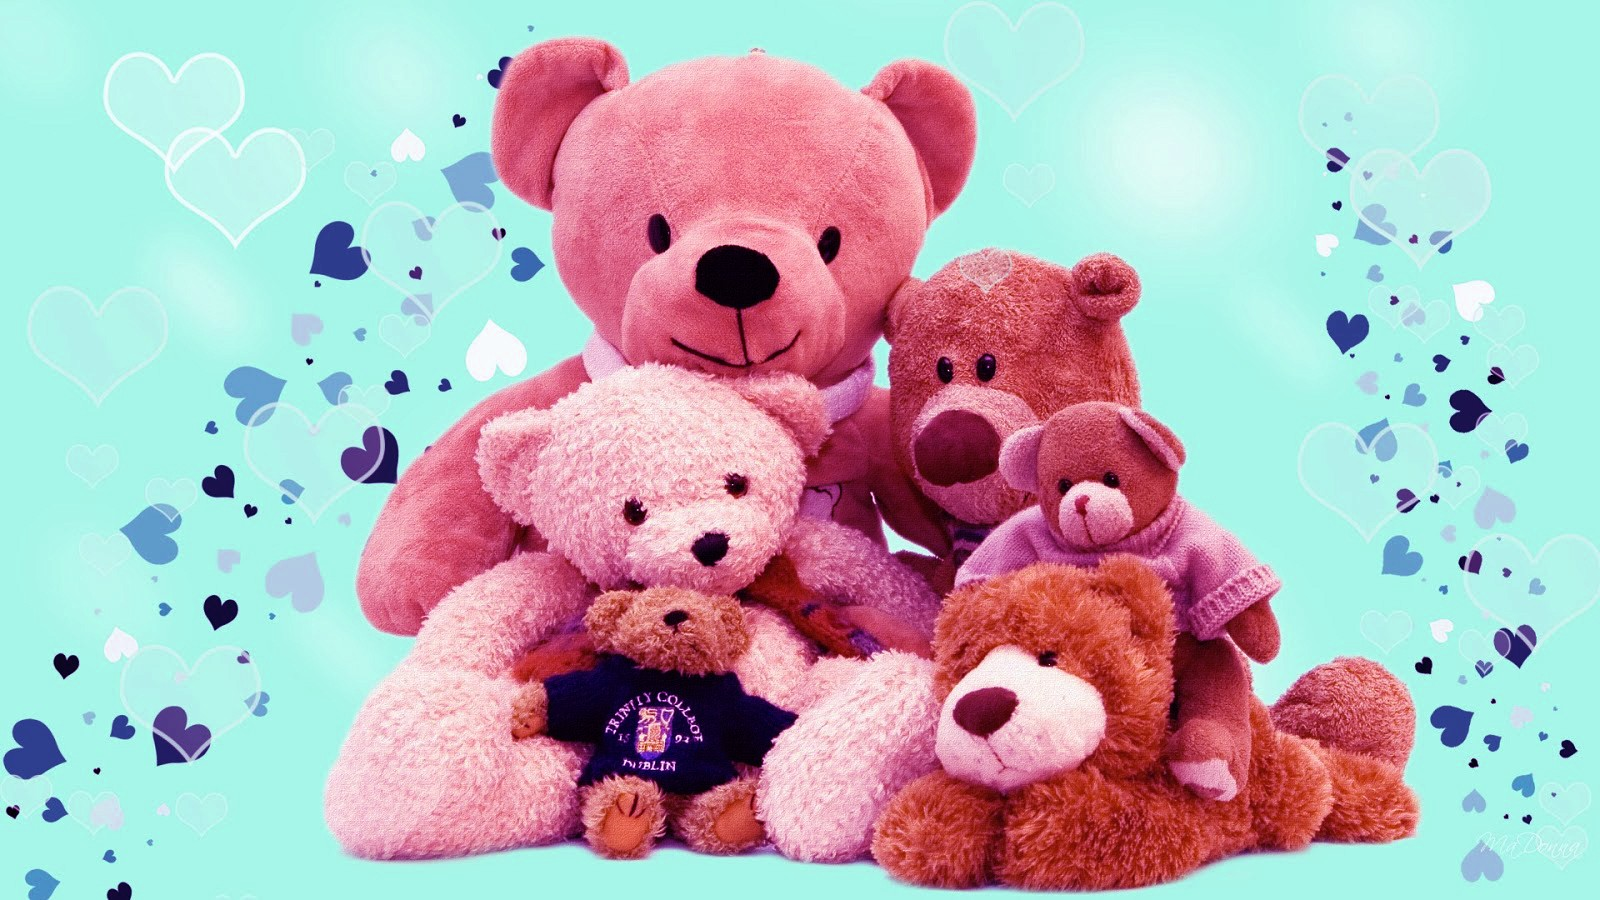 Full Size Cute Teddy Bears Hd Wallpapers Collection Of Teddy